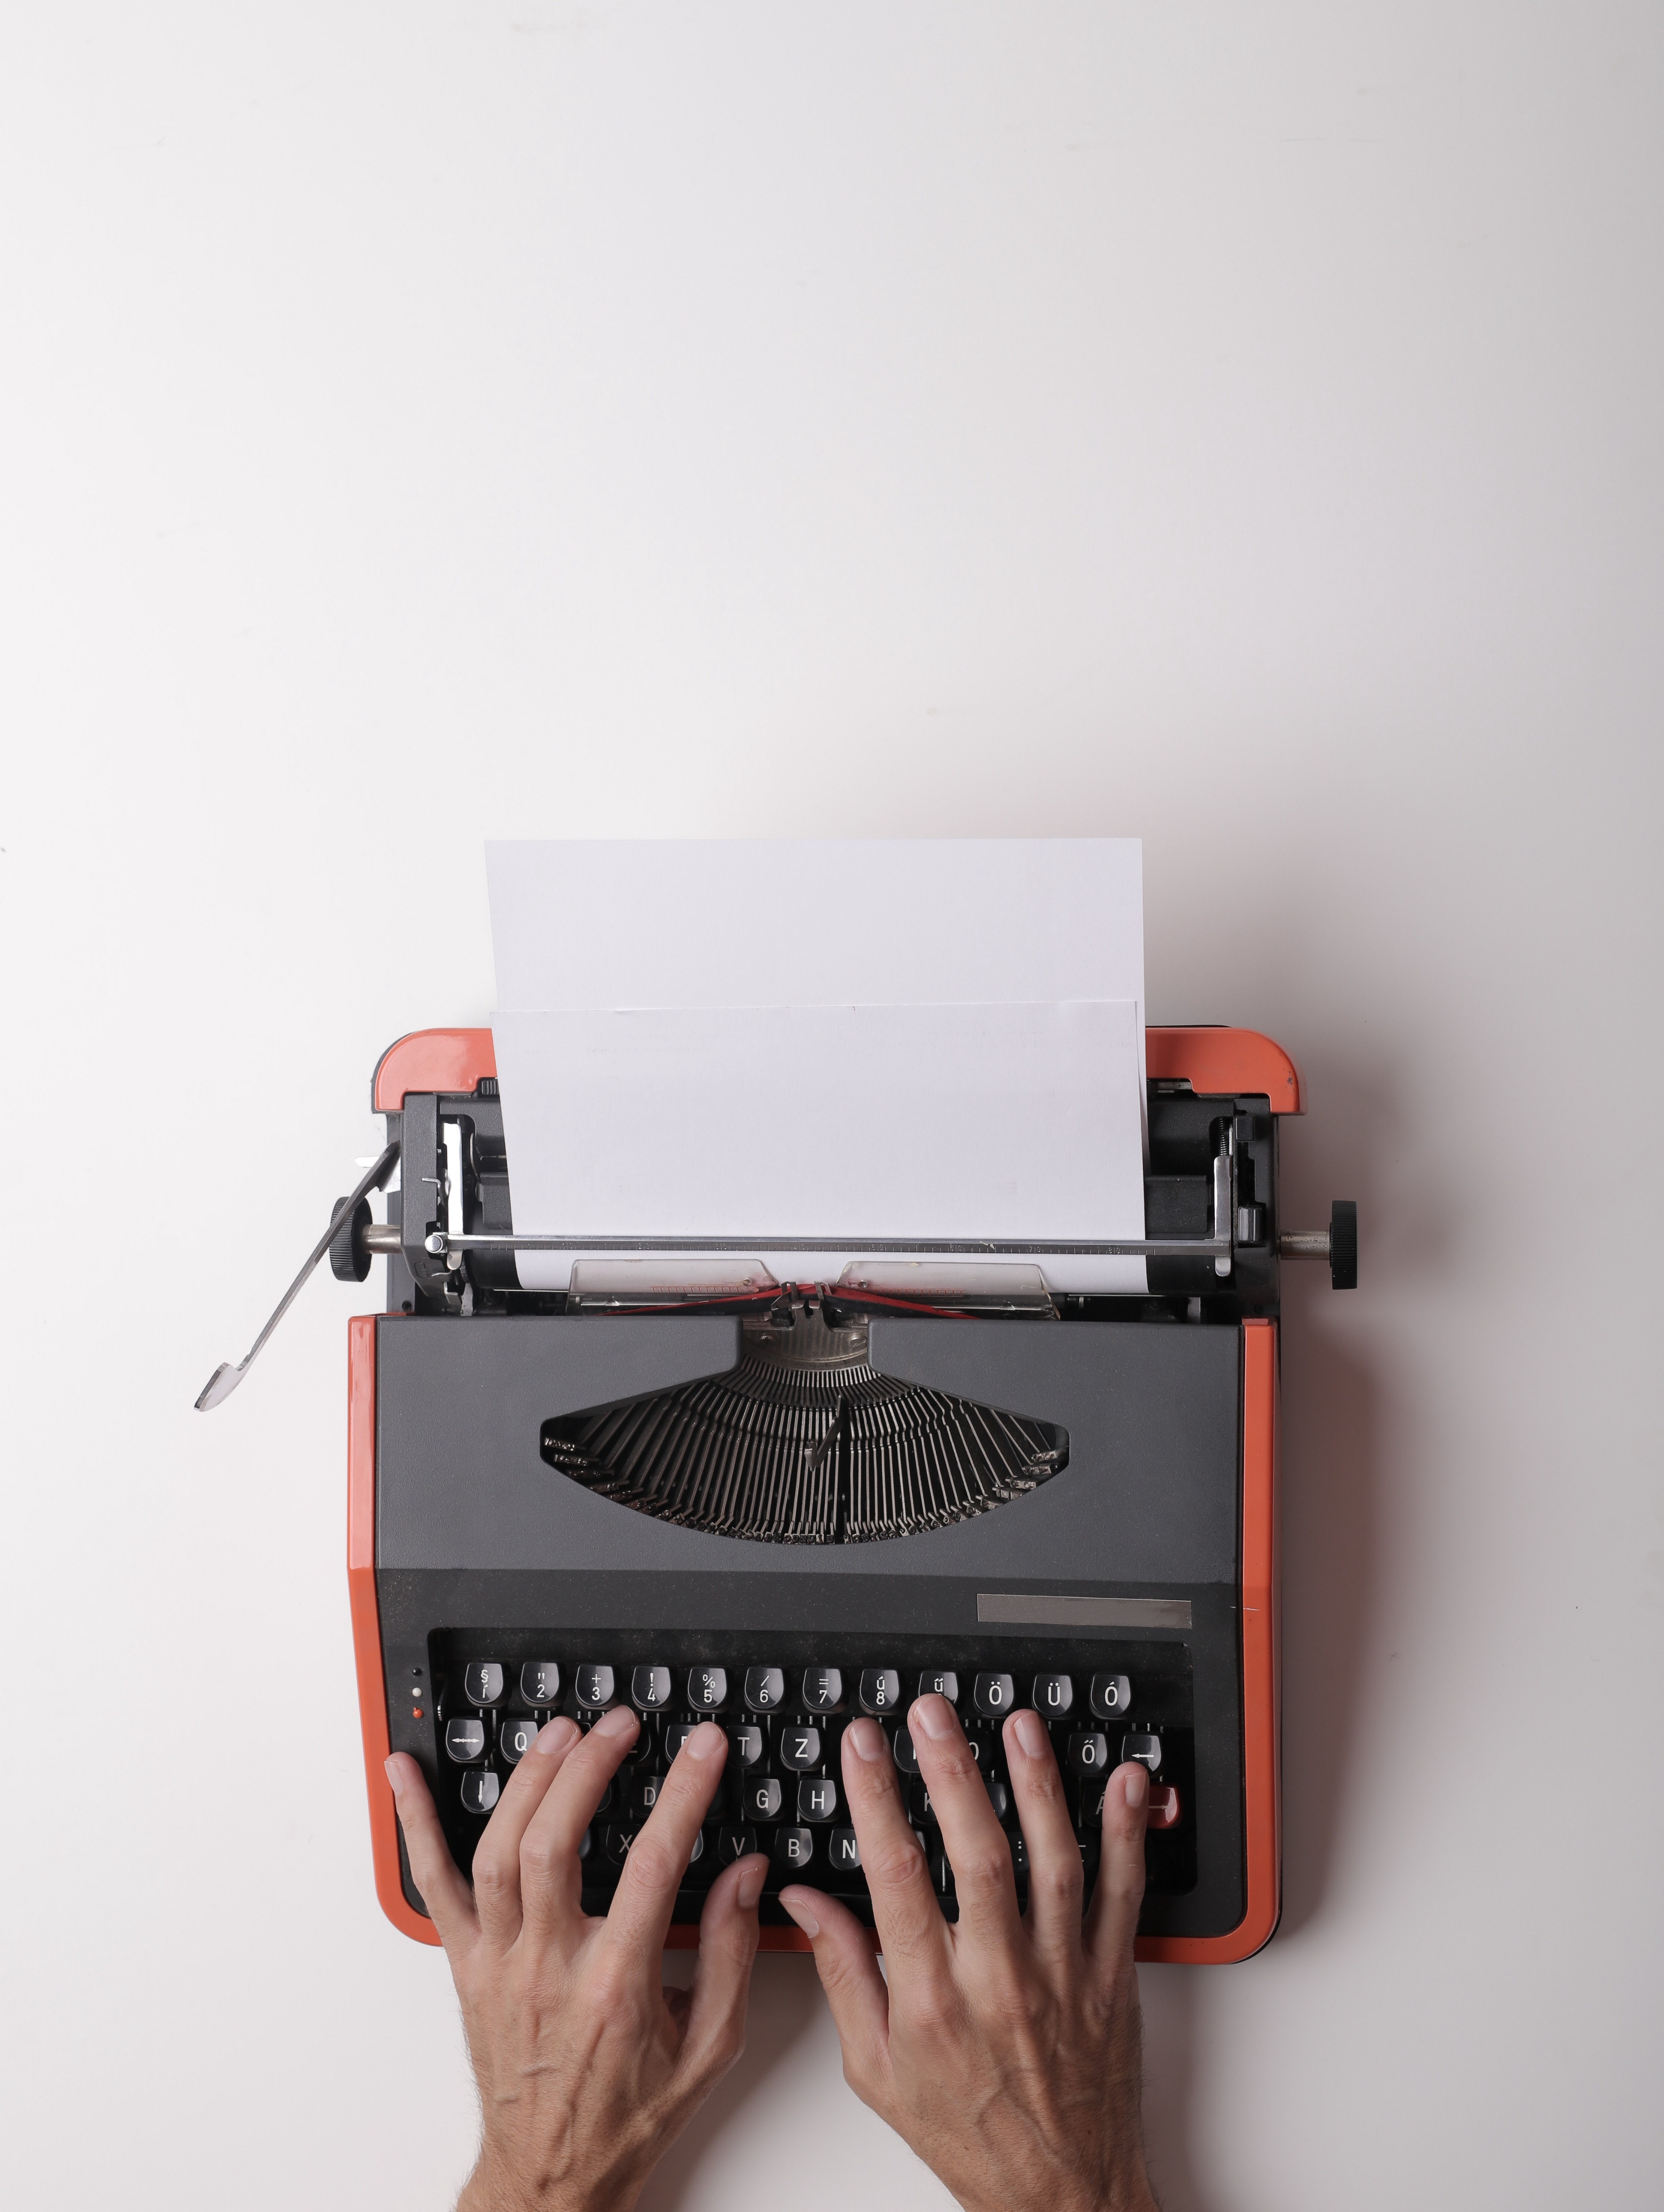 A typewritter in front of a white background with a pair of hands on top of it.